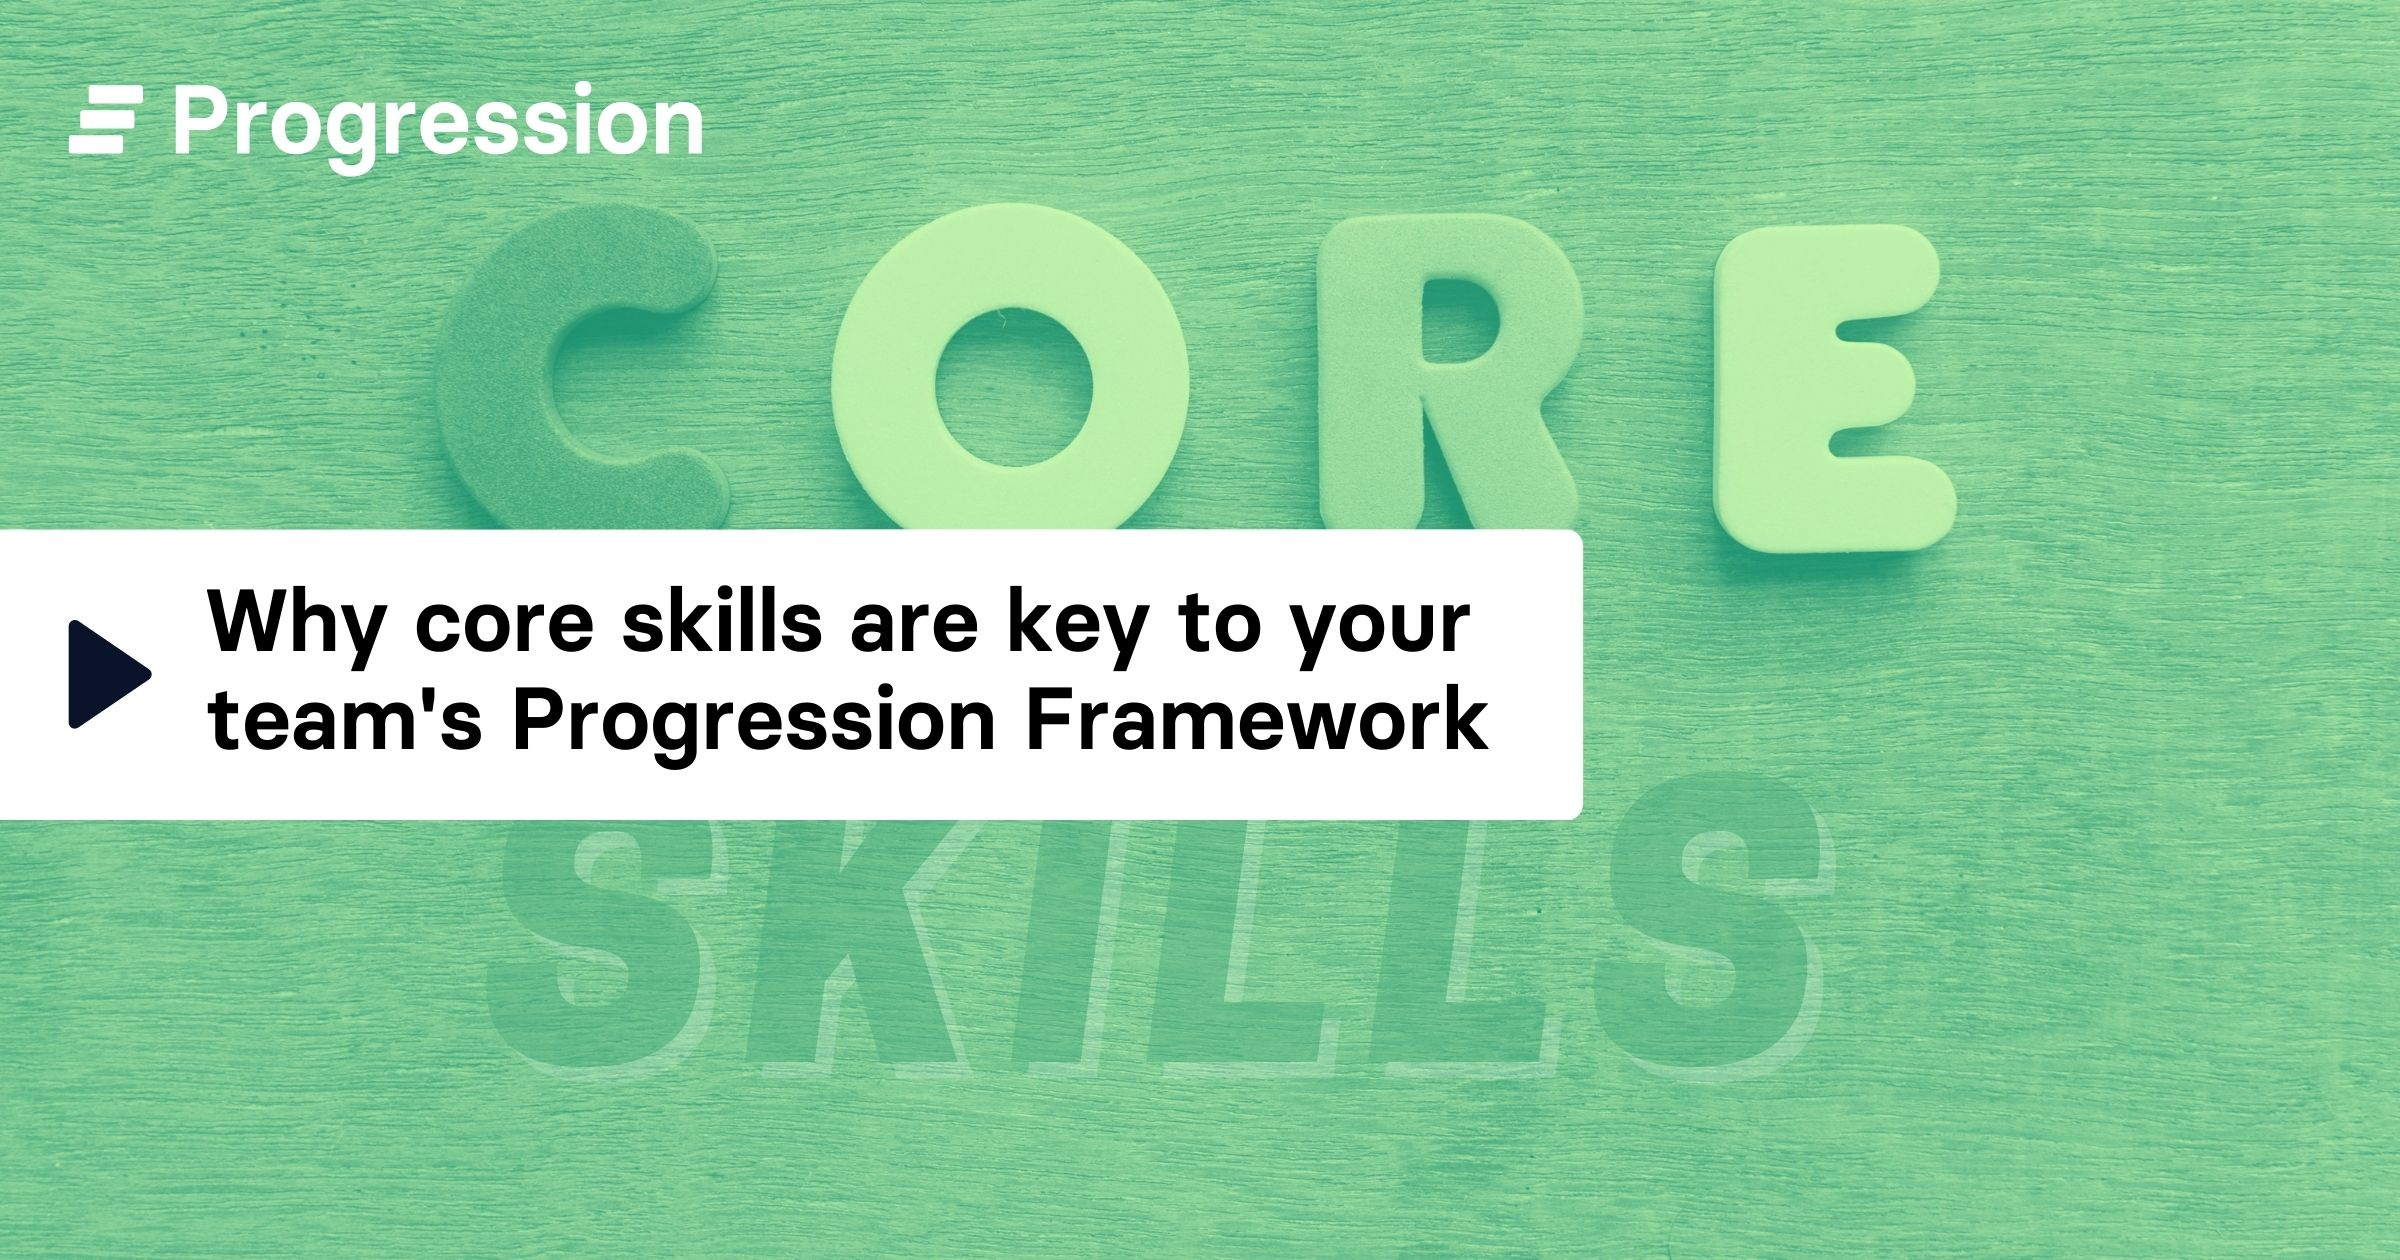 Why core skills are key to your team's progression framework